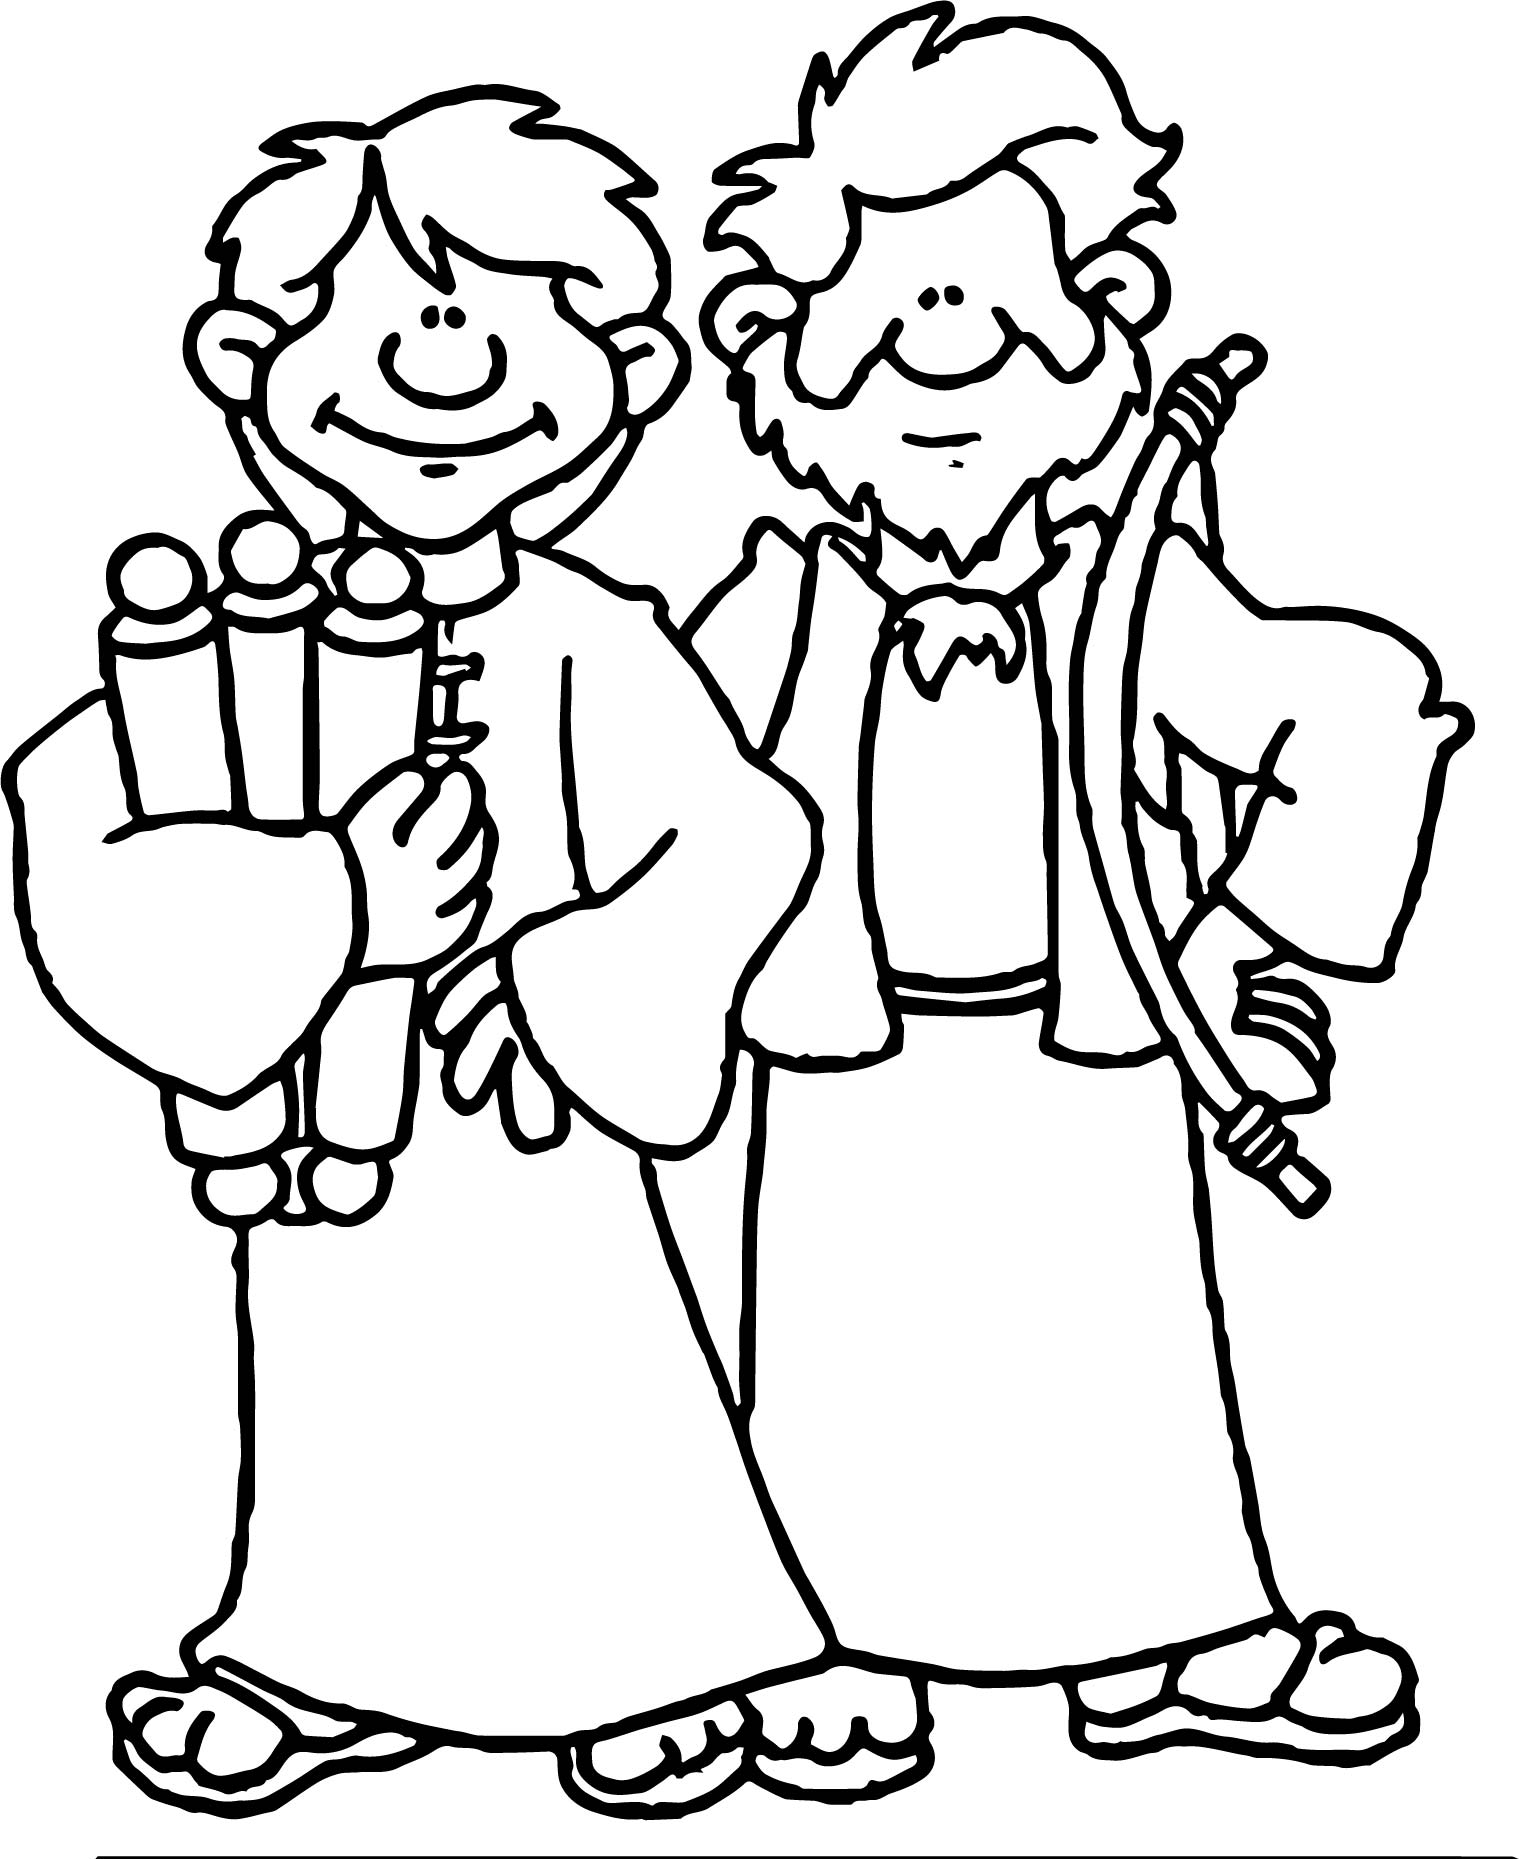 Apostle Paul Two People Coloring Page